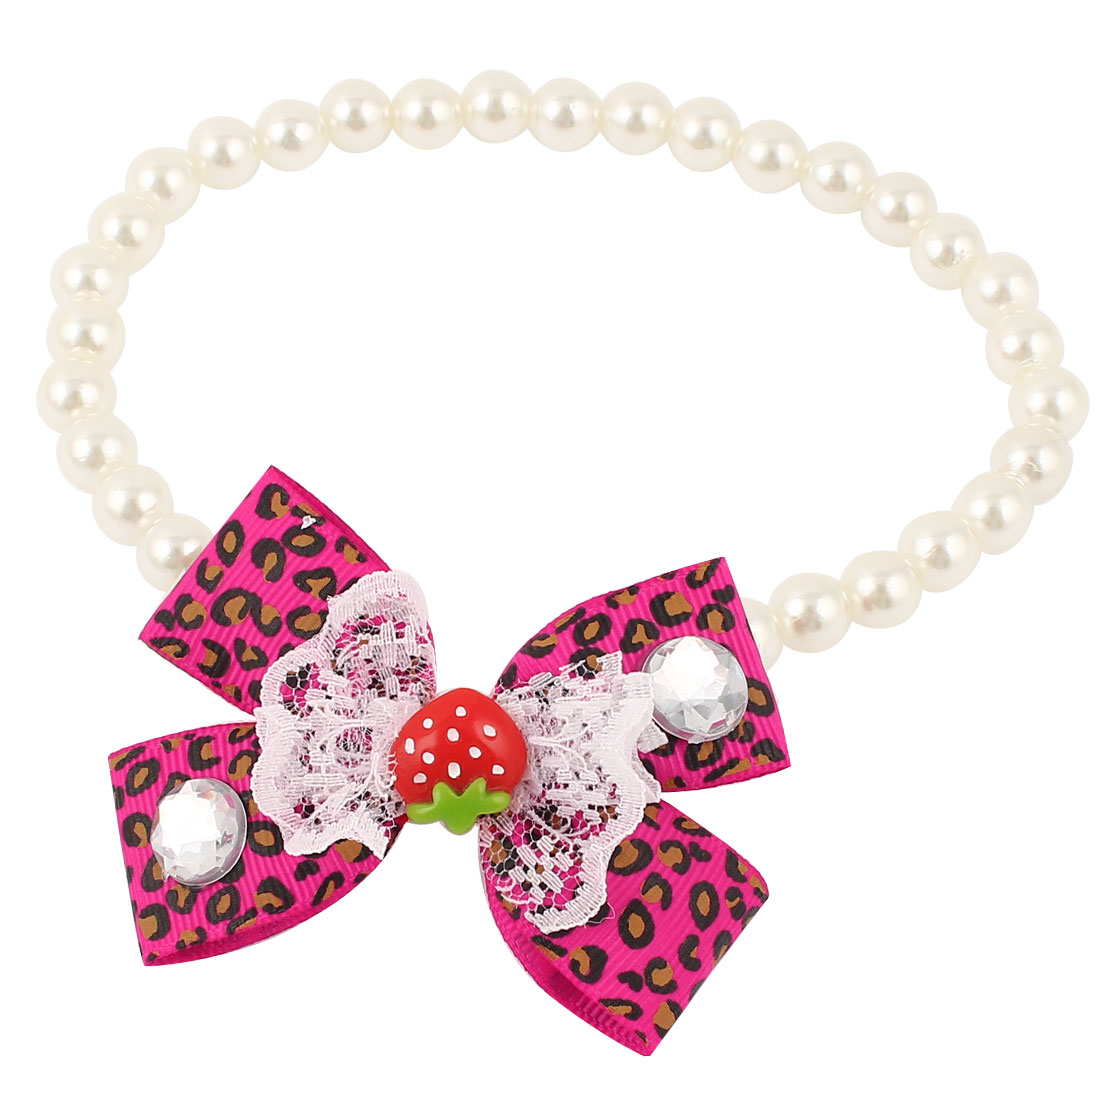 Bowtie Lace Faux Crystal Accent Pet Dog Plastic Beads Pearls Collar Necklace White Fuchsia L